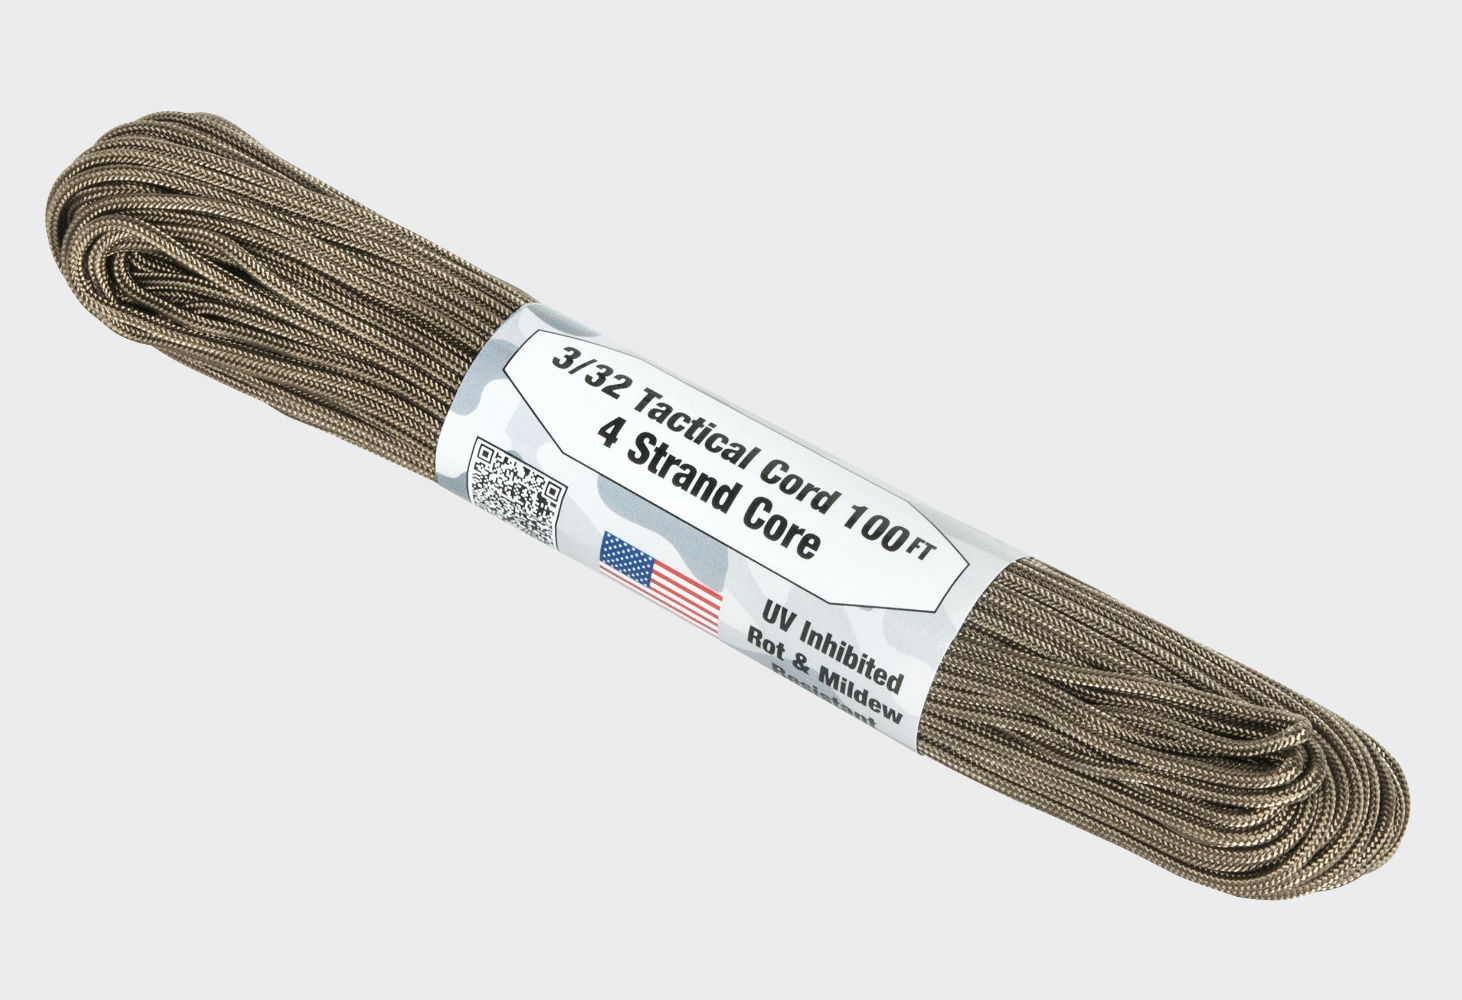 Paracord Cort 275 LBS. Cord  30,84 m (100ft) COYOTE.